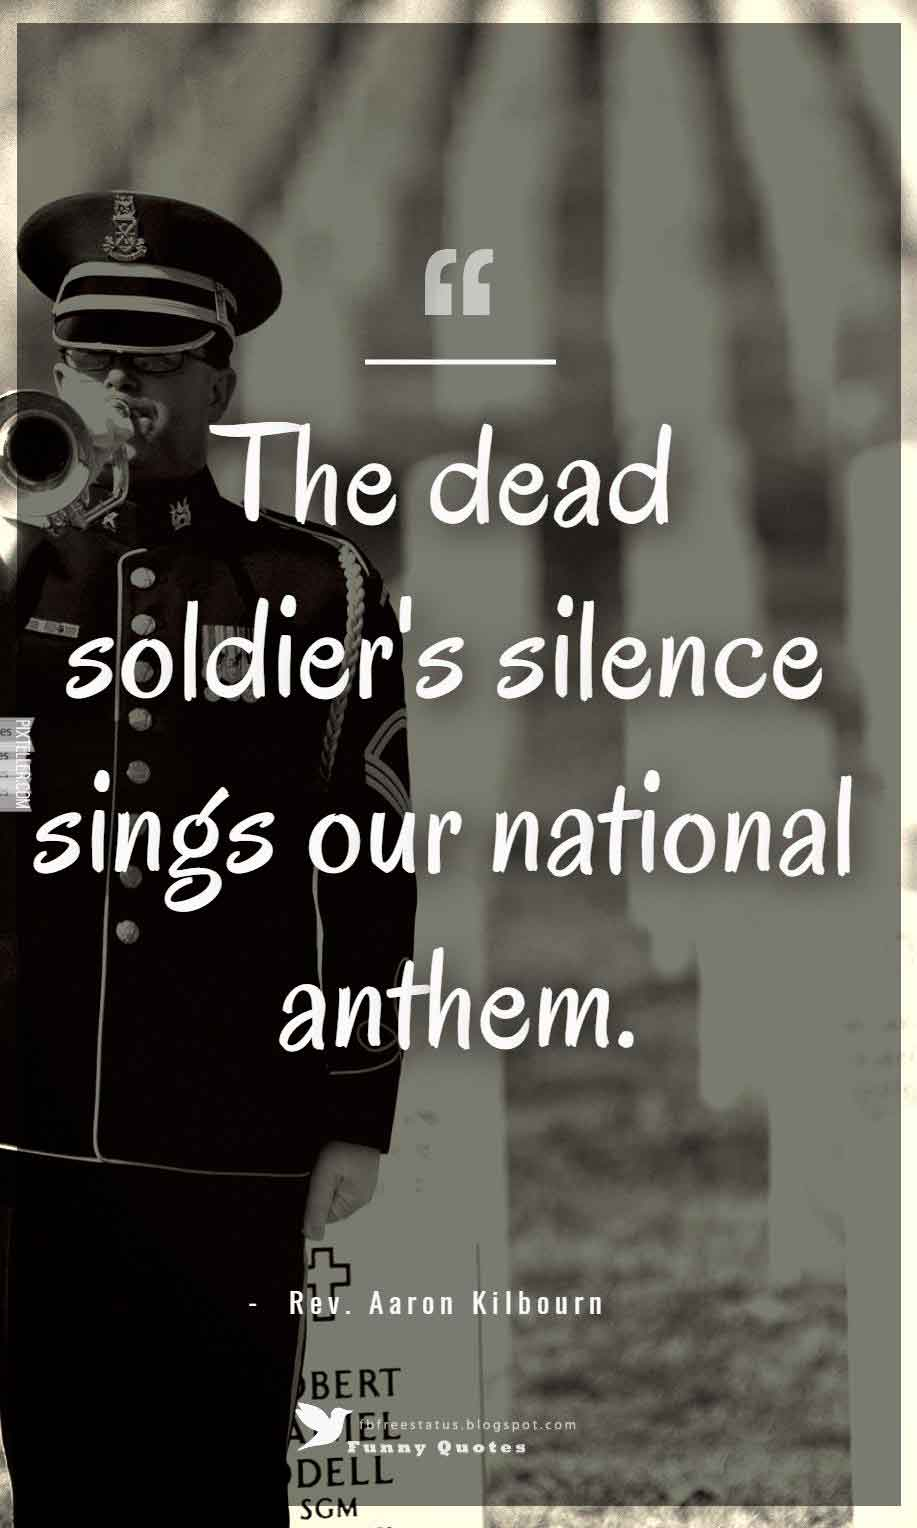 The dead soldier's silence sings our national anthem. ? Rev. Aaron Kilbourn